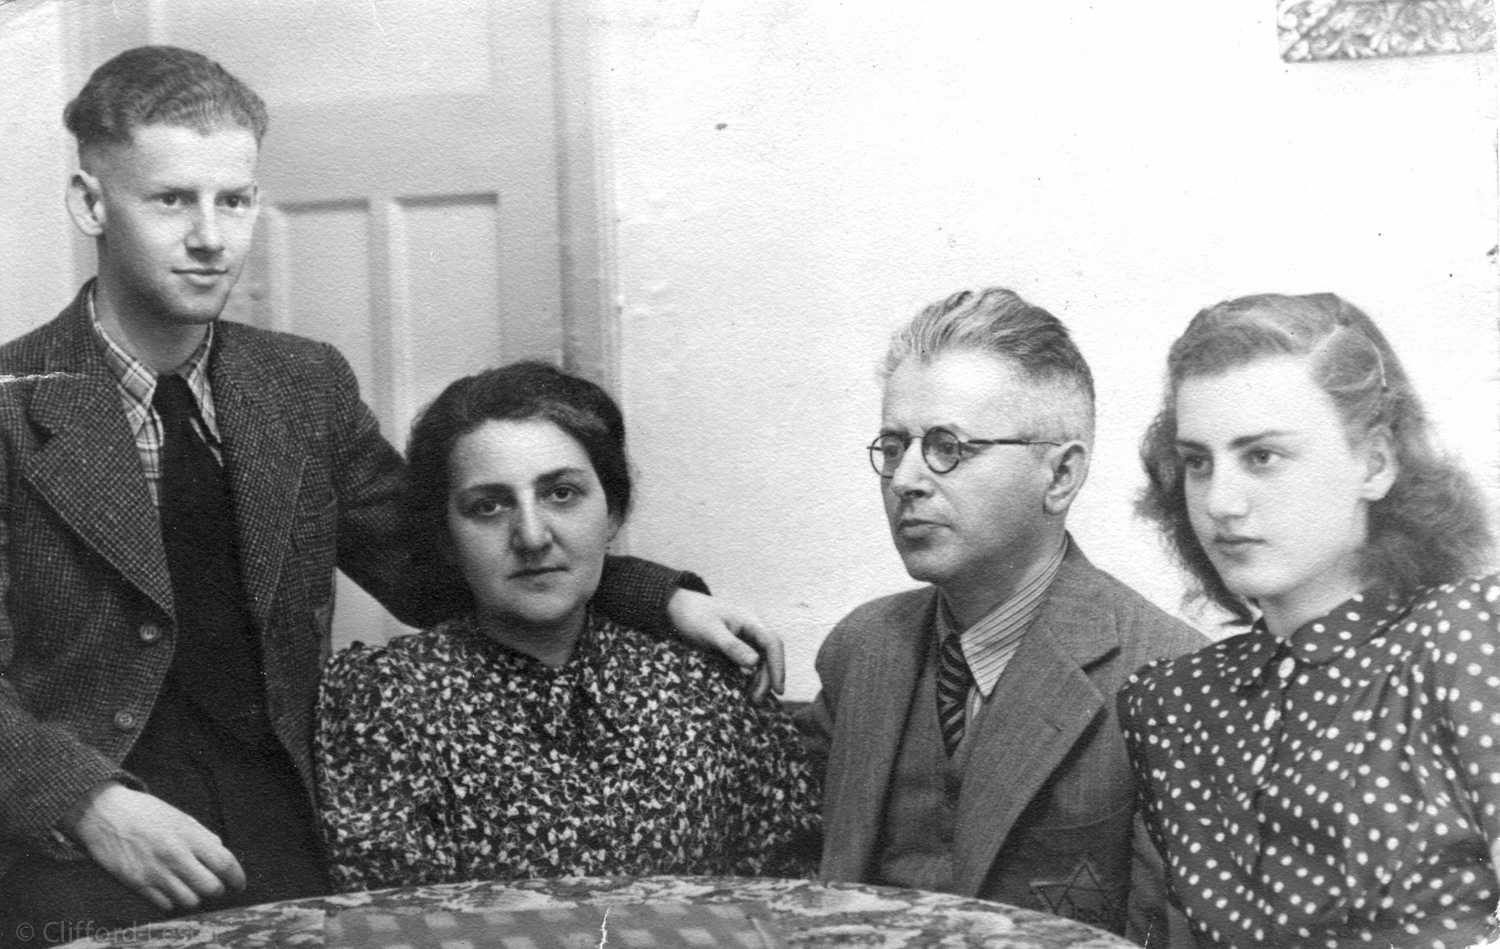 Last day the Lowenbach was together before Ernest had to report to the Gestapo.